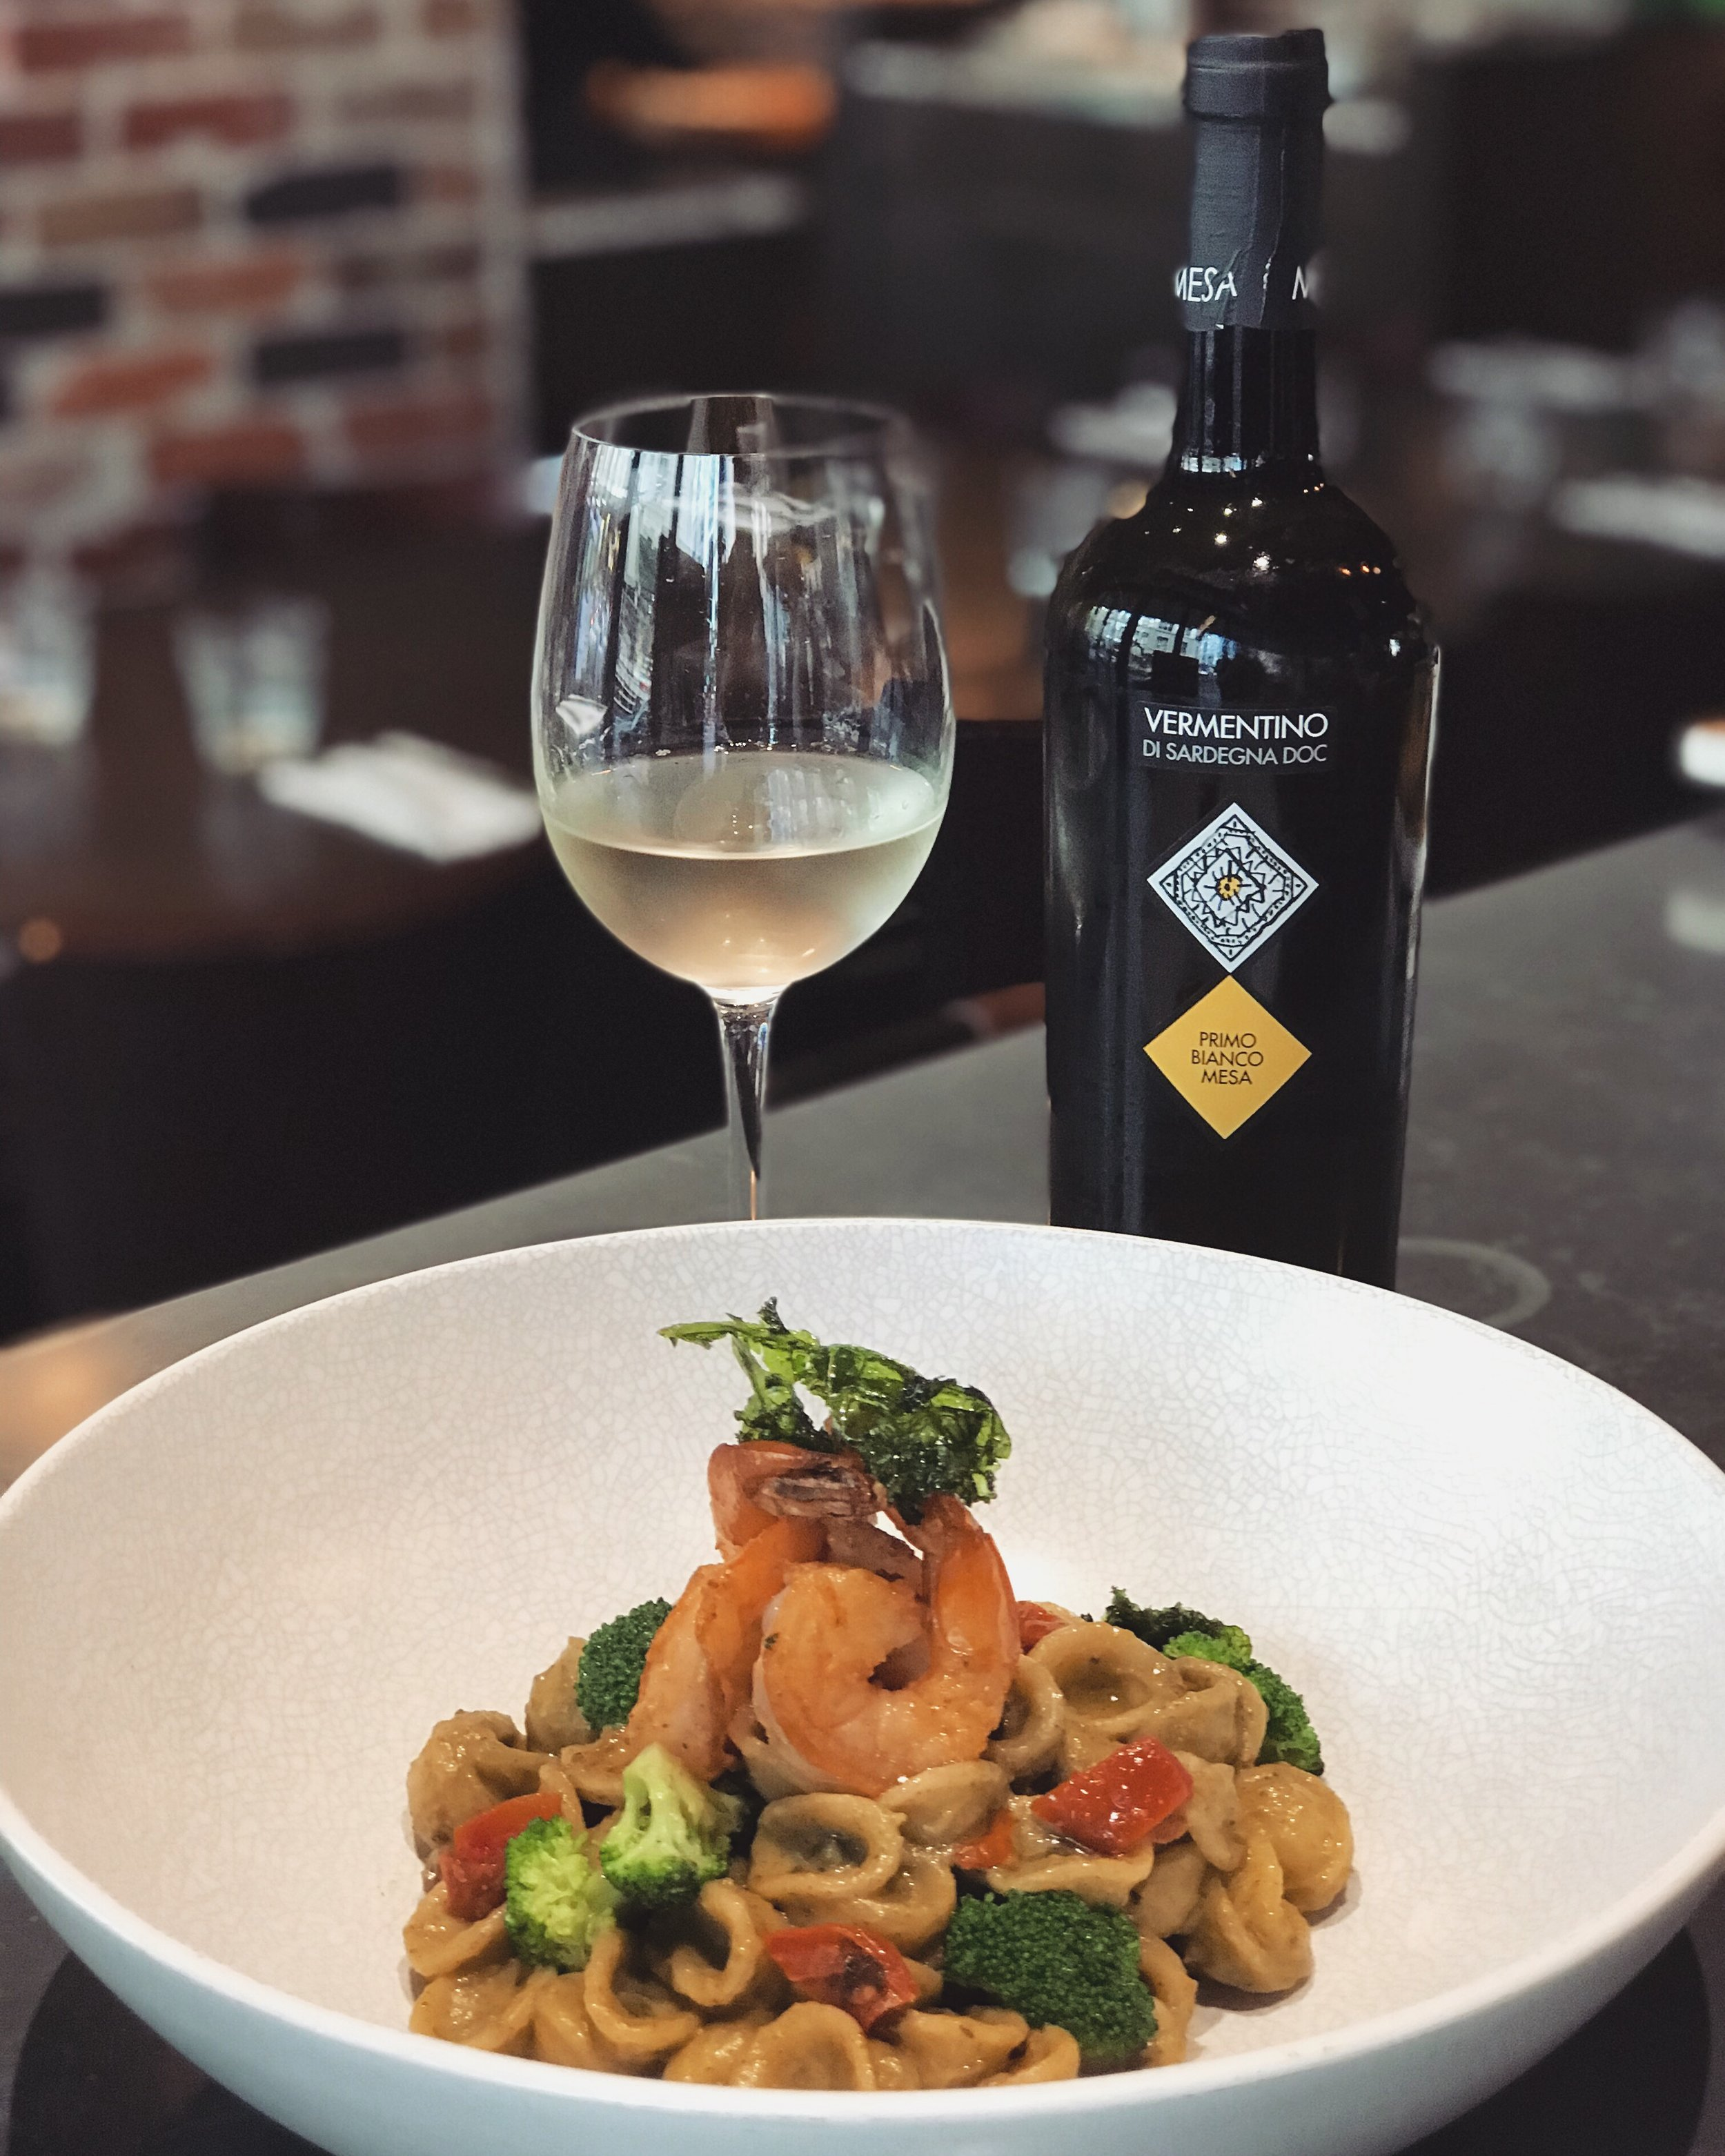 17-28 April - ~ Orecchiette Gamberetti & Broccoli ~⠀⠀Hand crafted orecchiette with prawns, broccoli, cream and thyme.⠀⠀Recommended with a glass of Vermentino.